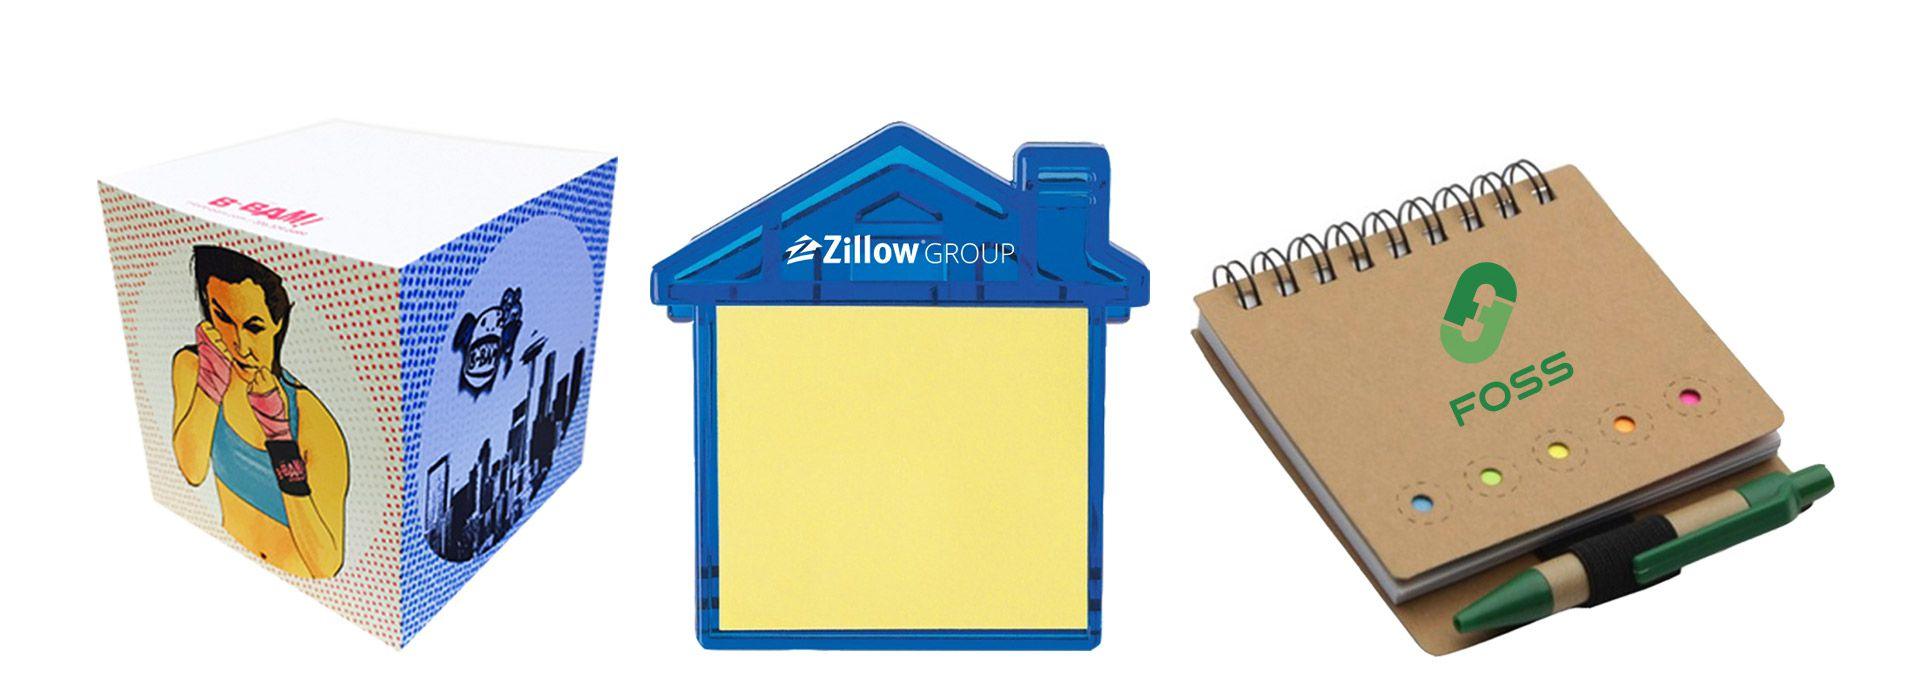 Custom Printed Corporate Logo Branded Promotional Stick Notes Pads Seattle